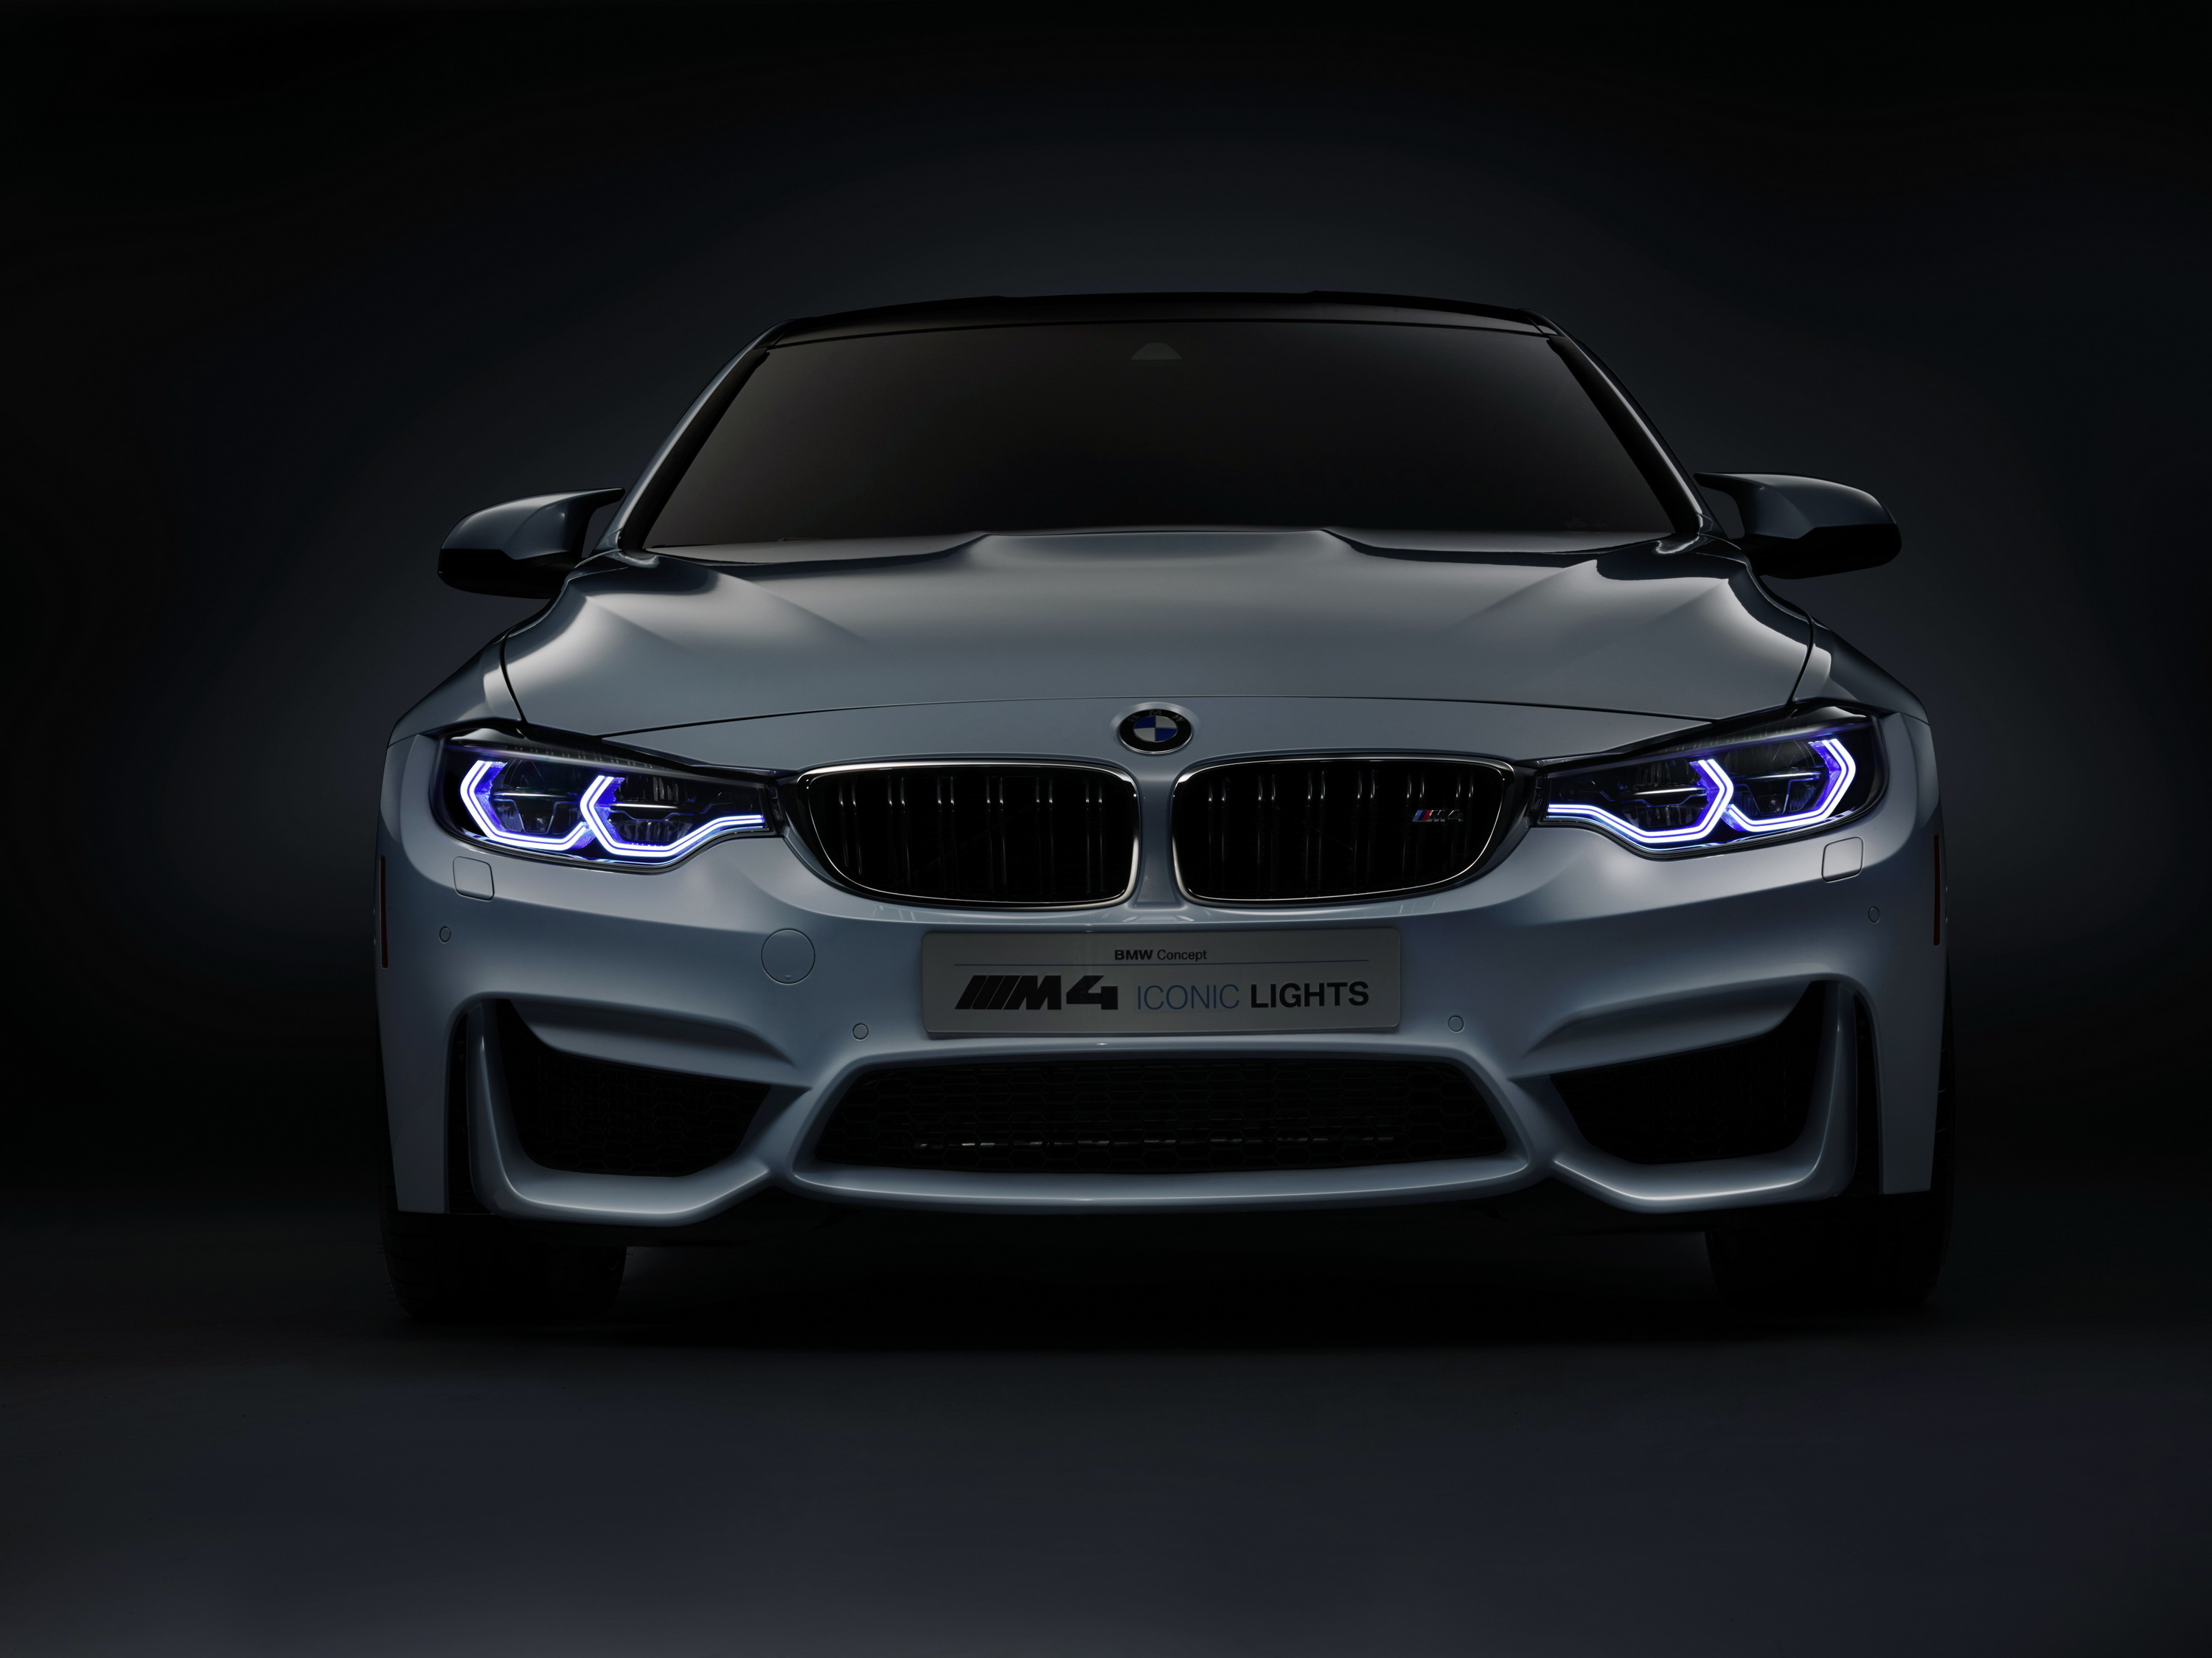 2015 Bmw M4 Concept Iconic Lights Top Speed